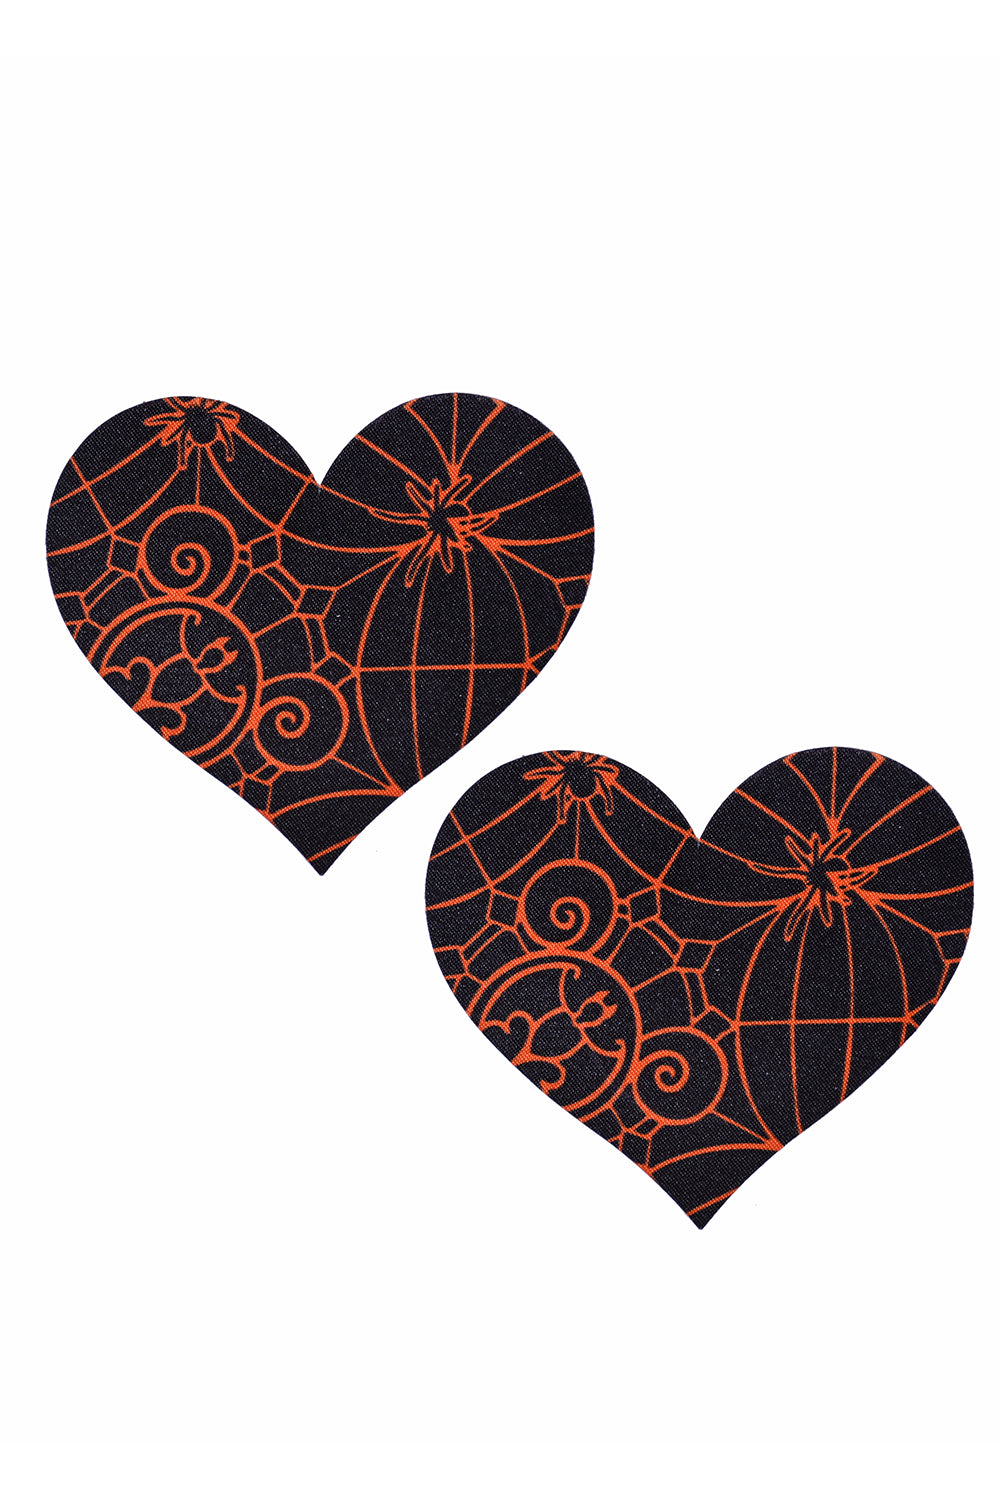 Orange Spider Net Heart Pasties